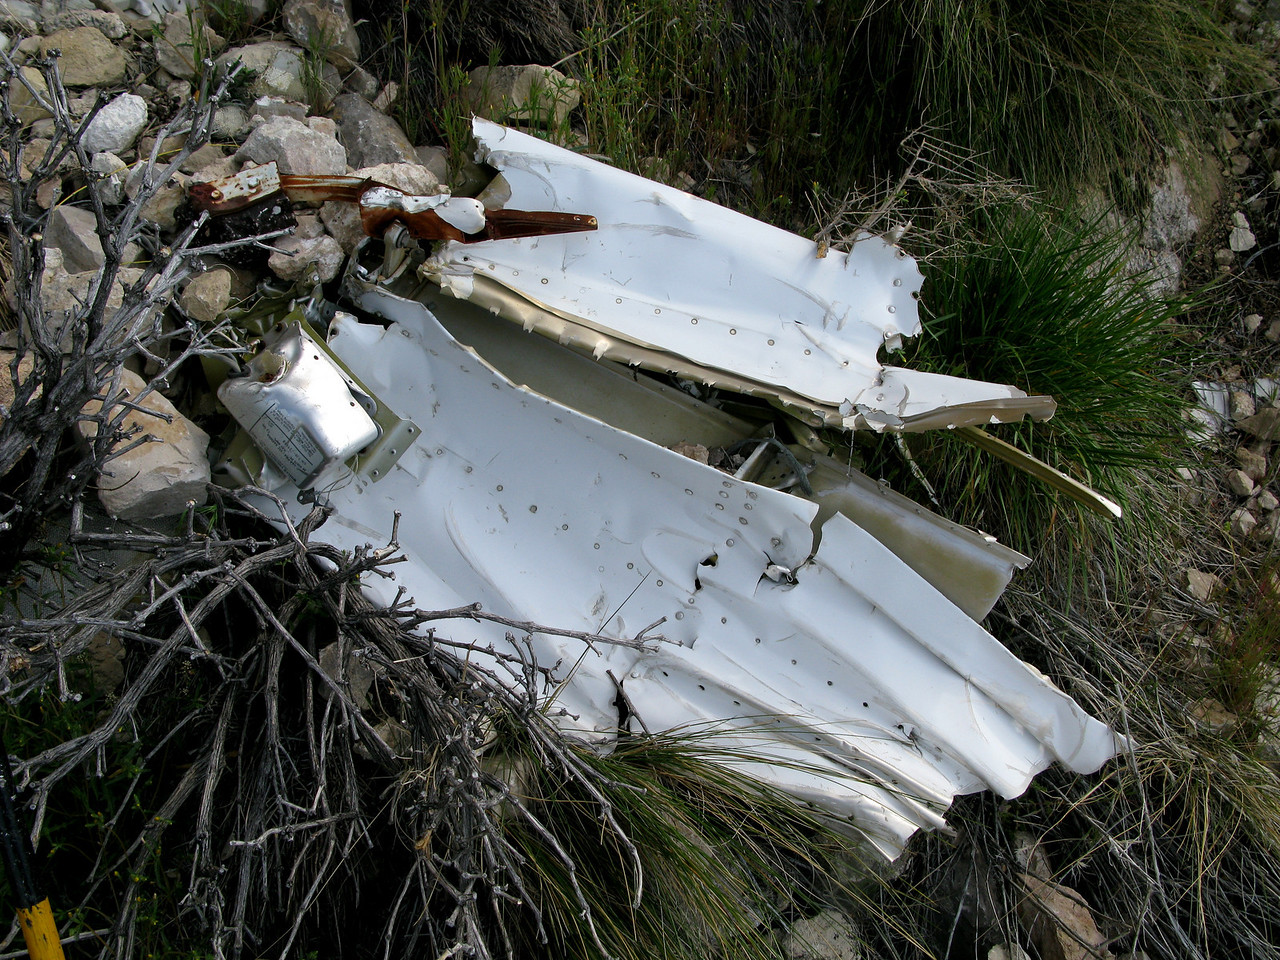 This fragment of wingtip was identifiable only by the strobe light power supply that was still attached to the structure.